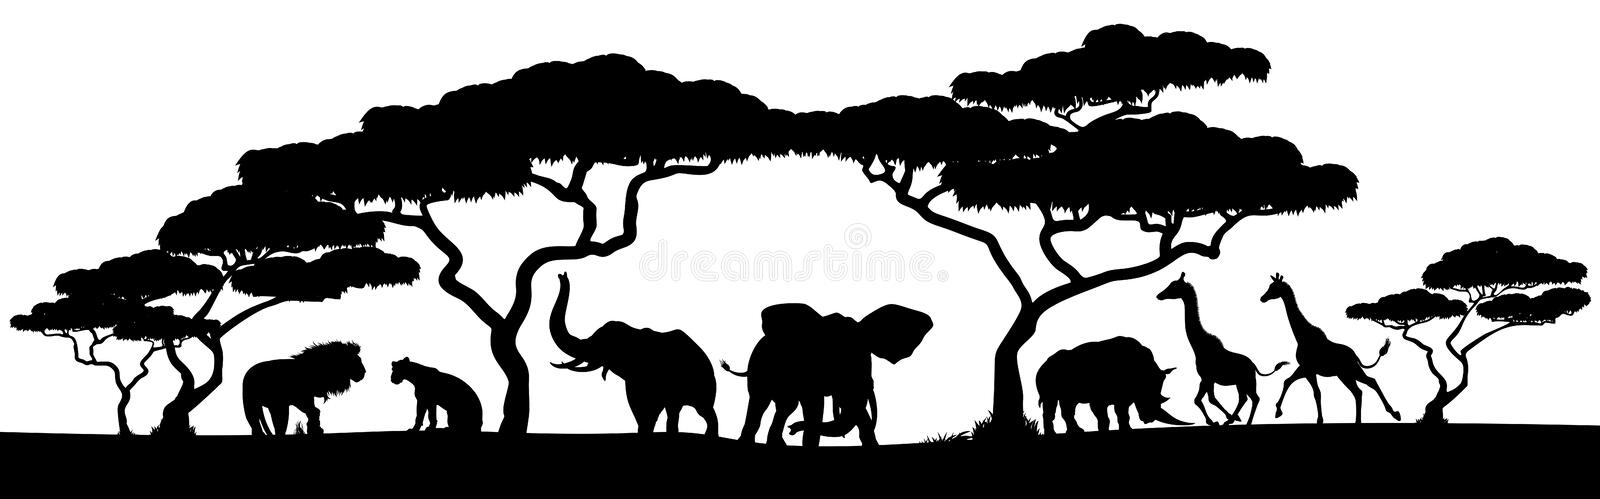 Silhouette African Safari Animal Landscape Scene vector illustration